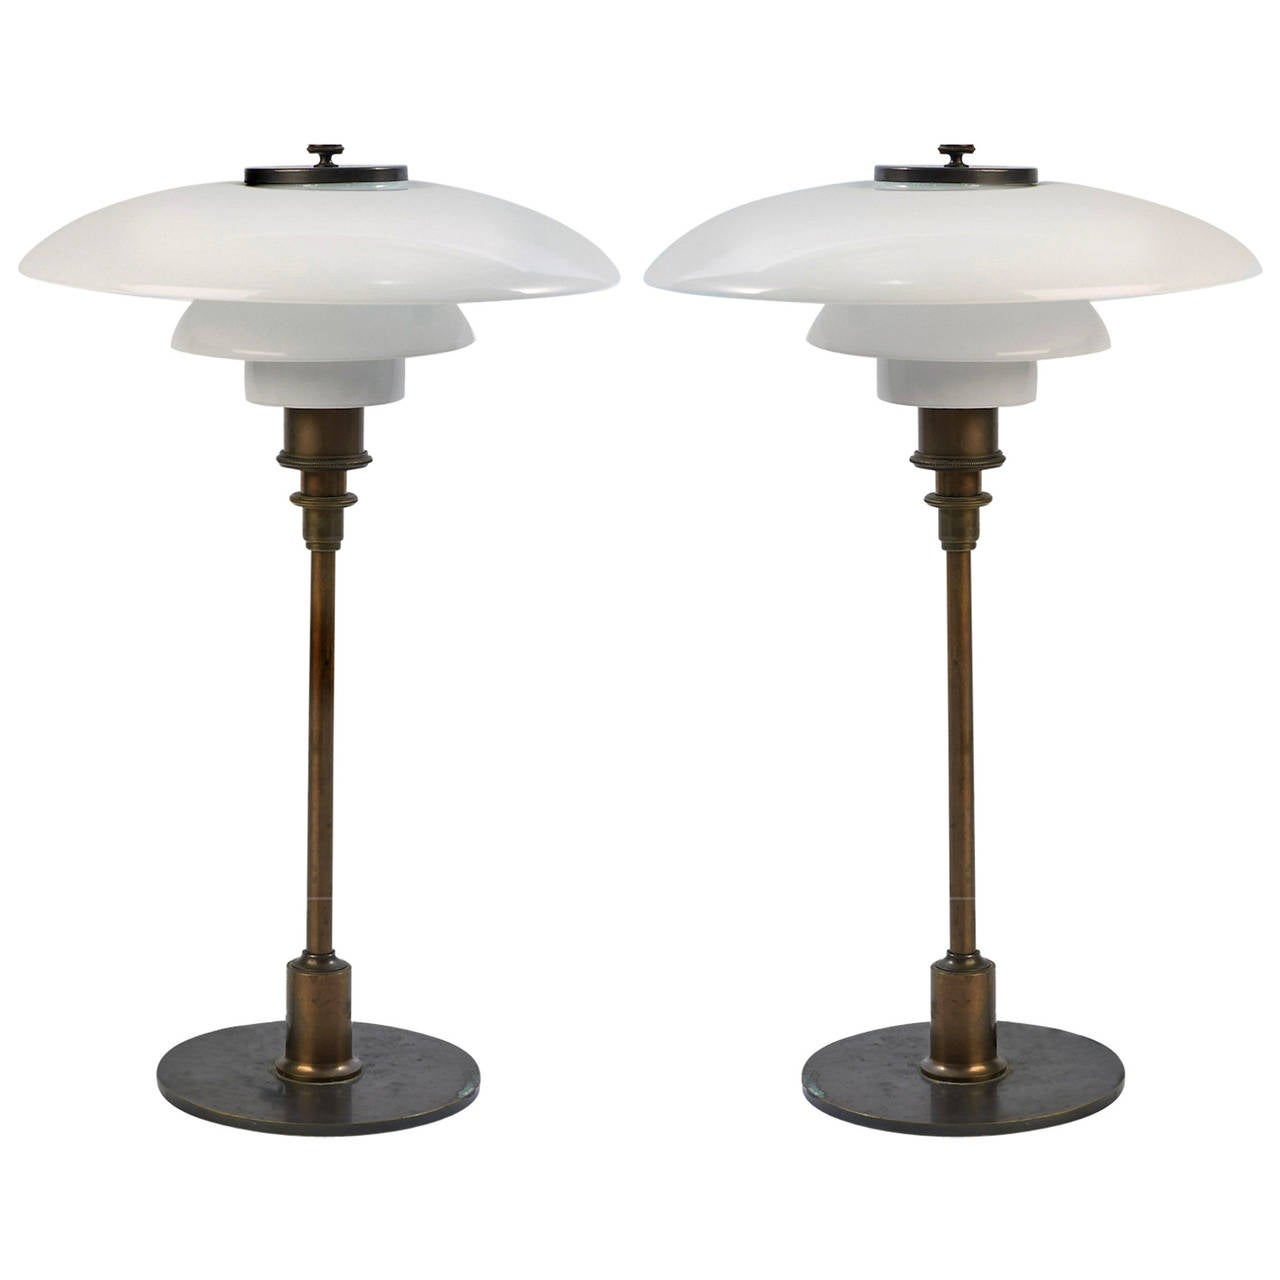 poul henningsen treph table lamp. Black Bedroom Furniture Sets. Home Design Ideas